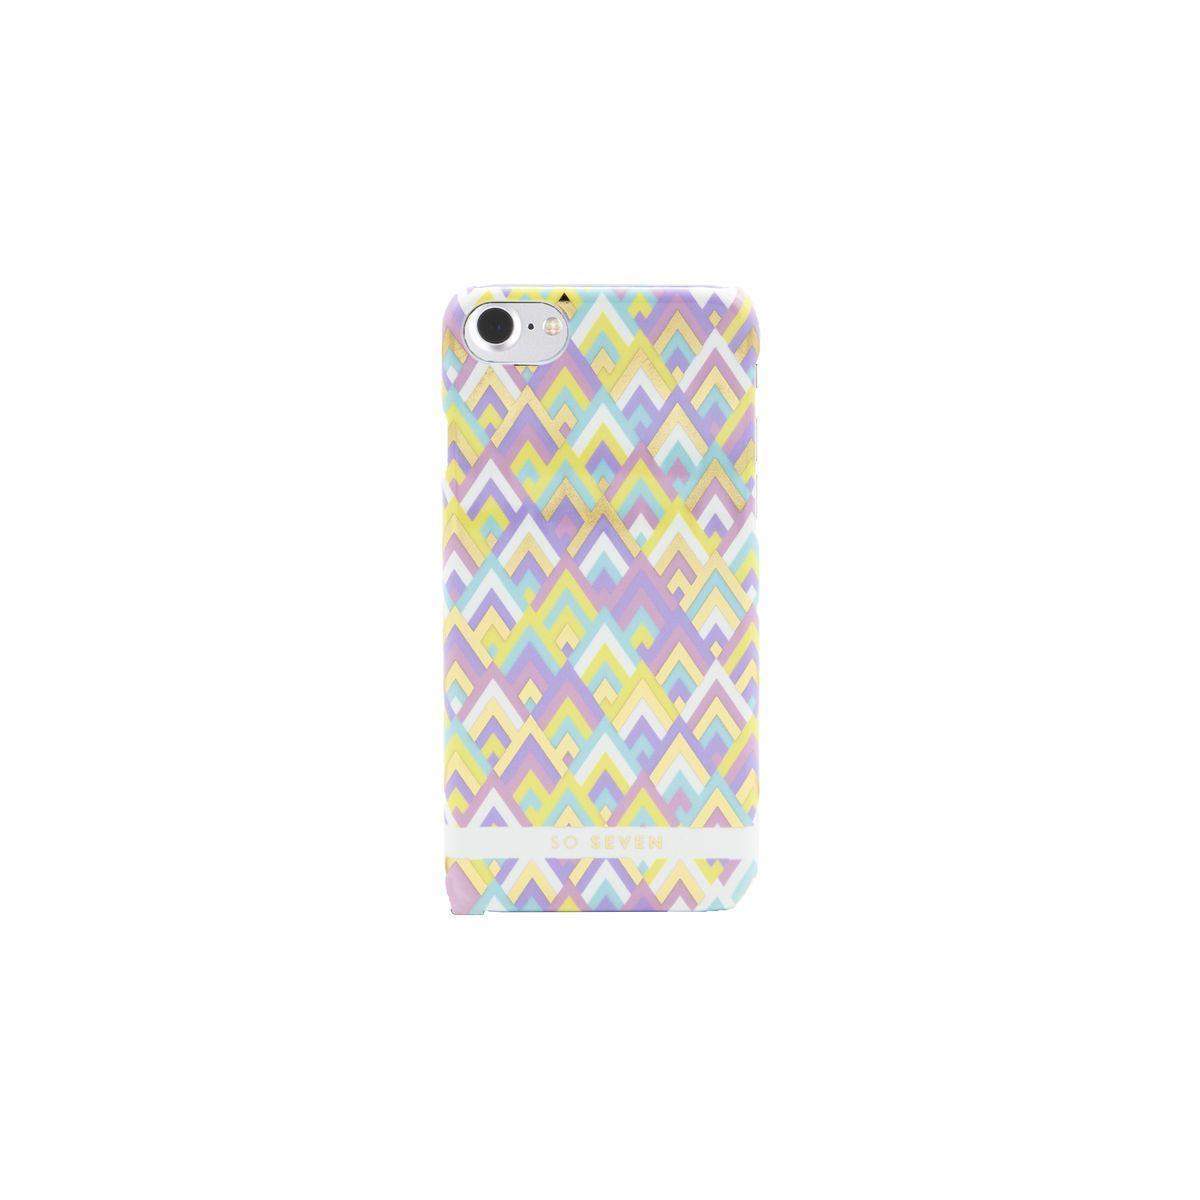 Coque so seven notting hill triangles apple iphone 7 - 10% de remise imm�diate avec le c